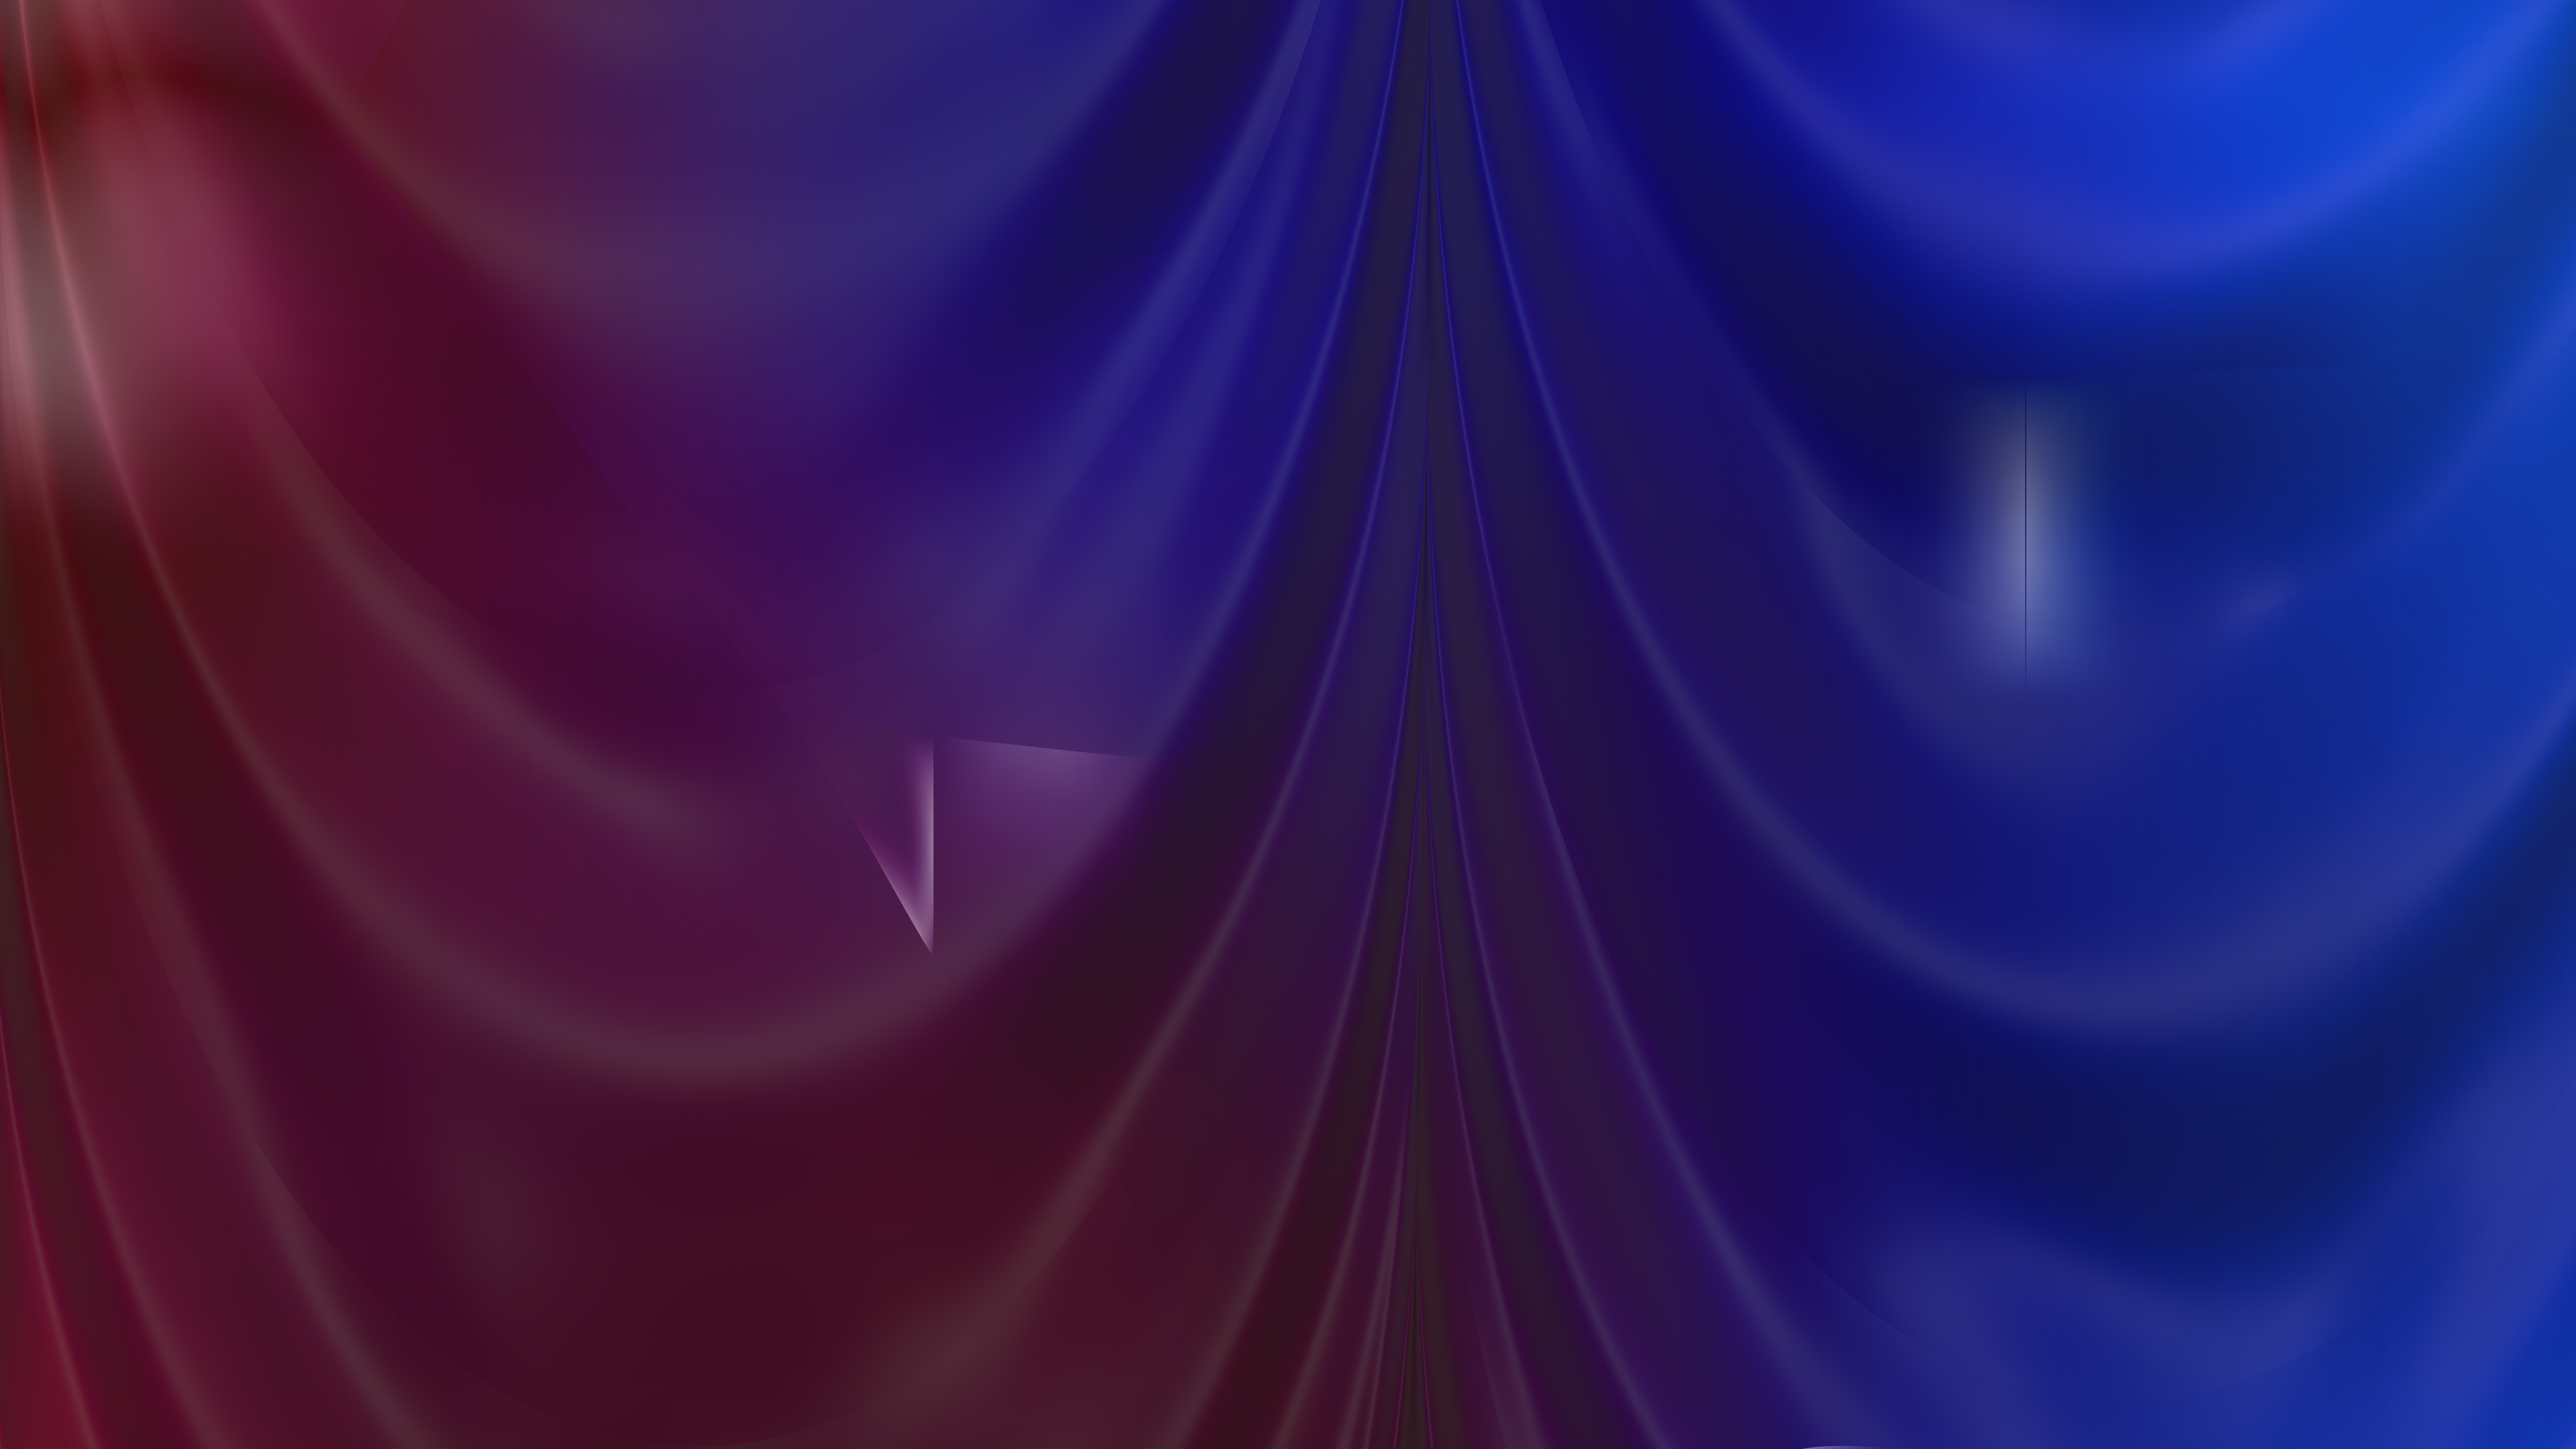 Abstract Red and Blue Curtain Texture Background